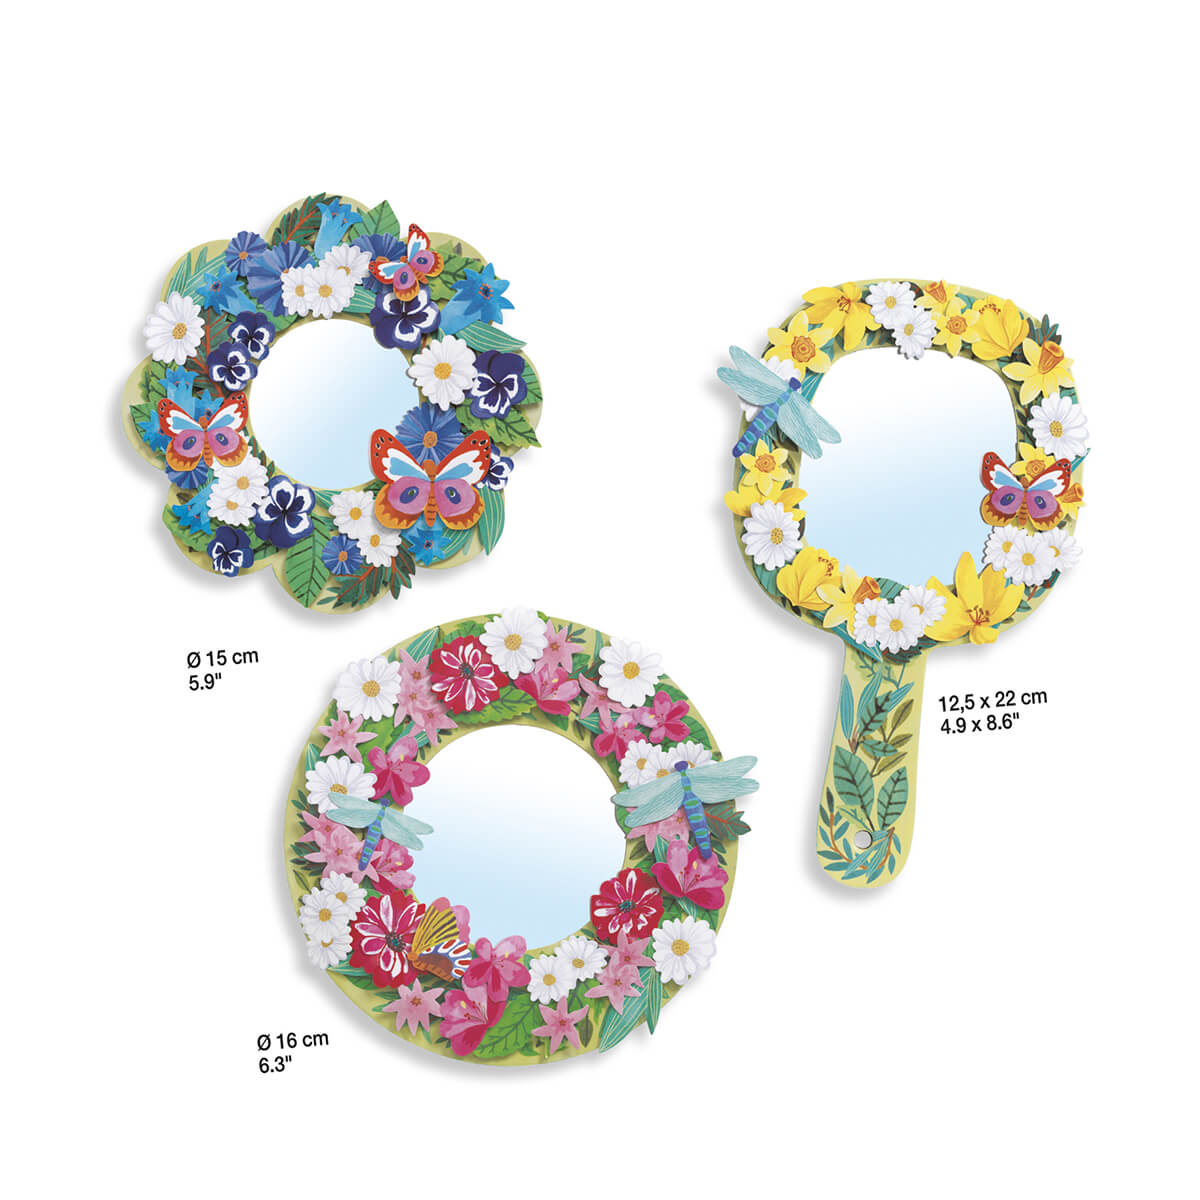 DJ07908 DJECO DIY Mirrors for Decorating Sweet Floral